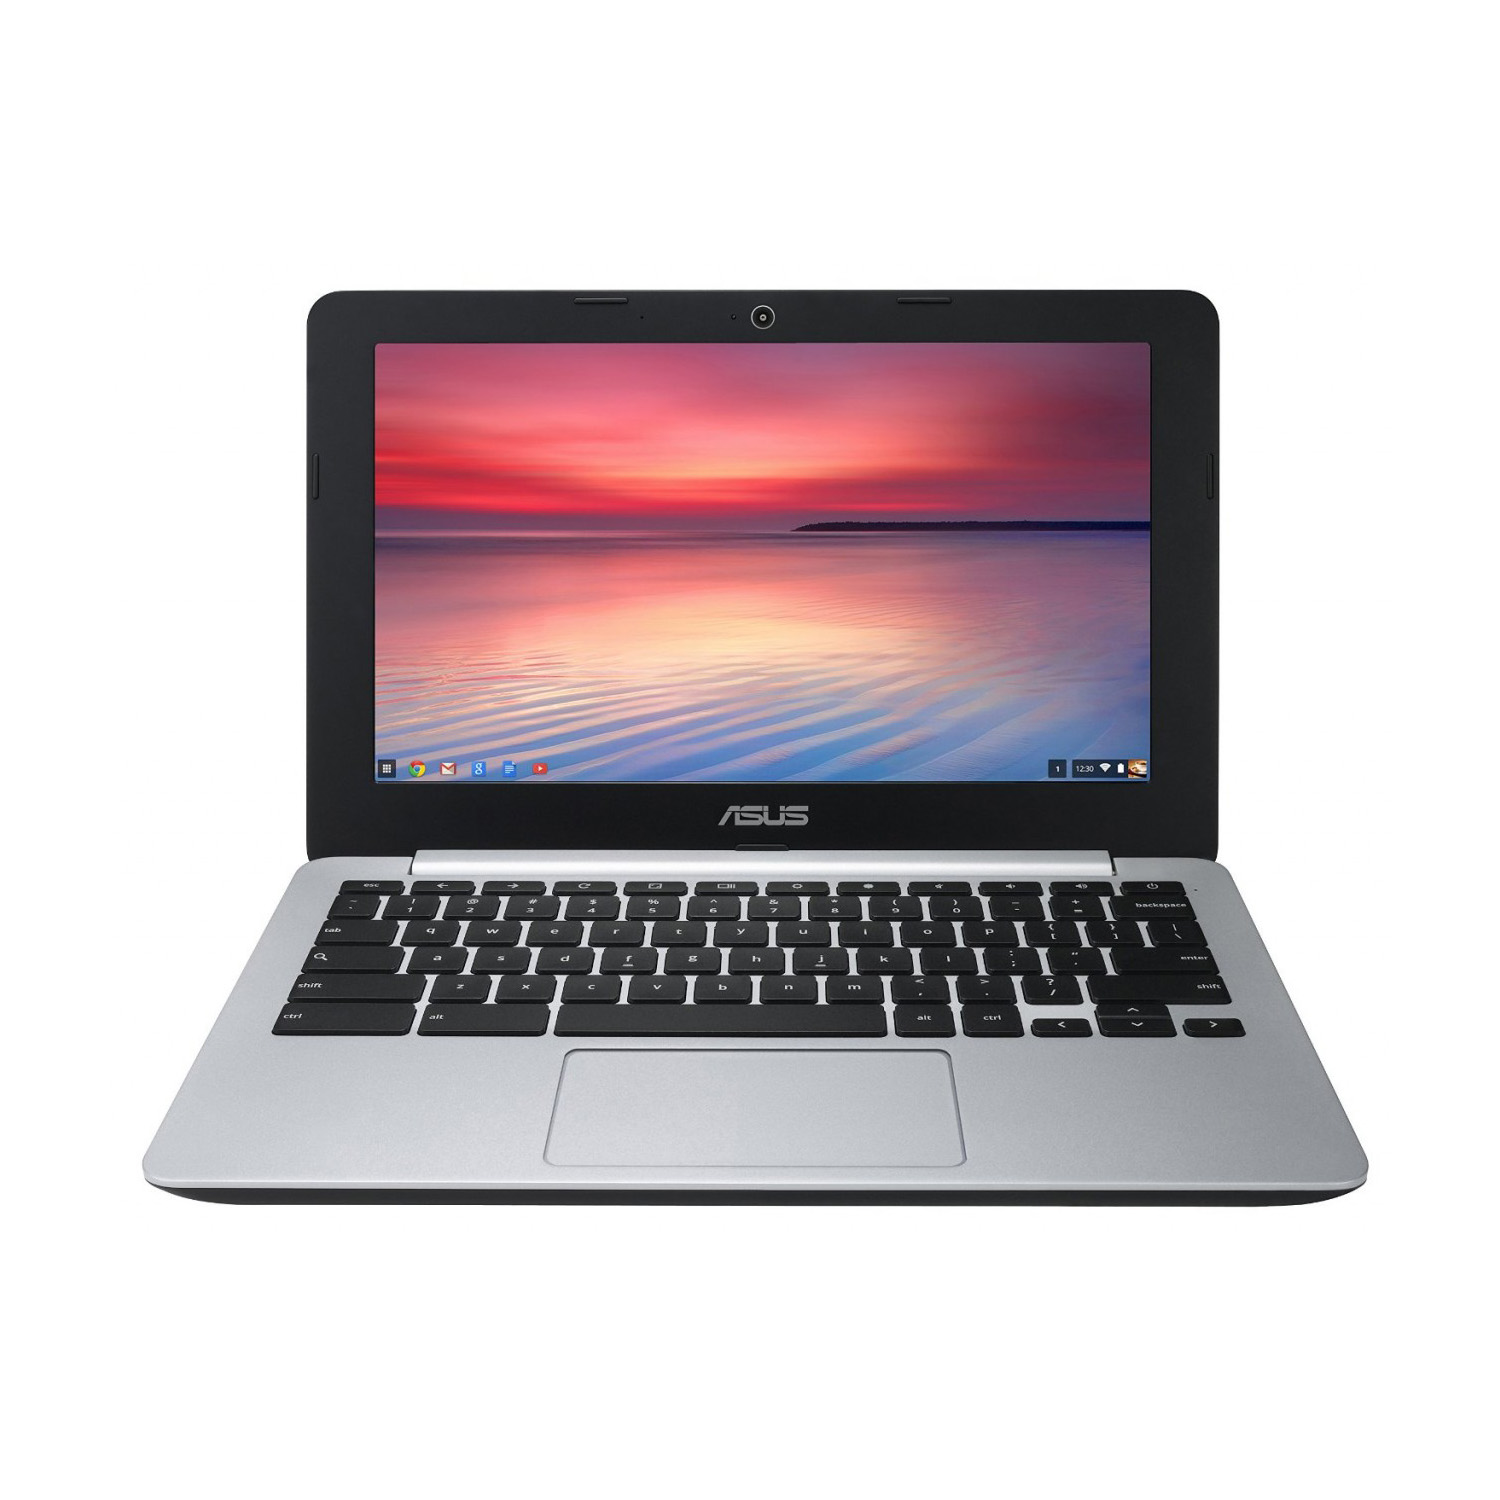 "Refurbished Asus 11.6"" C200MA Chromebook Laptop Intel Celeron Dual Core 2.16GHz 2GB 16GB SSD"